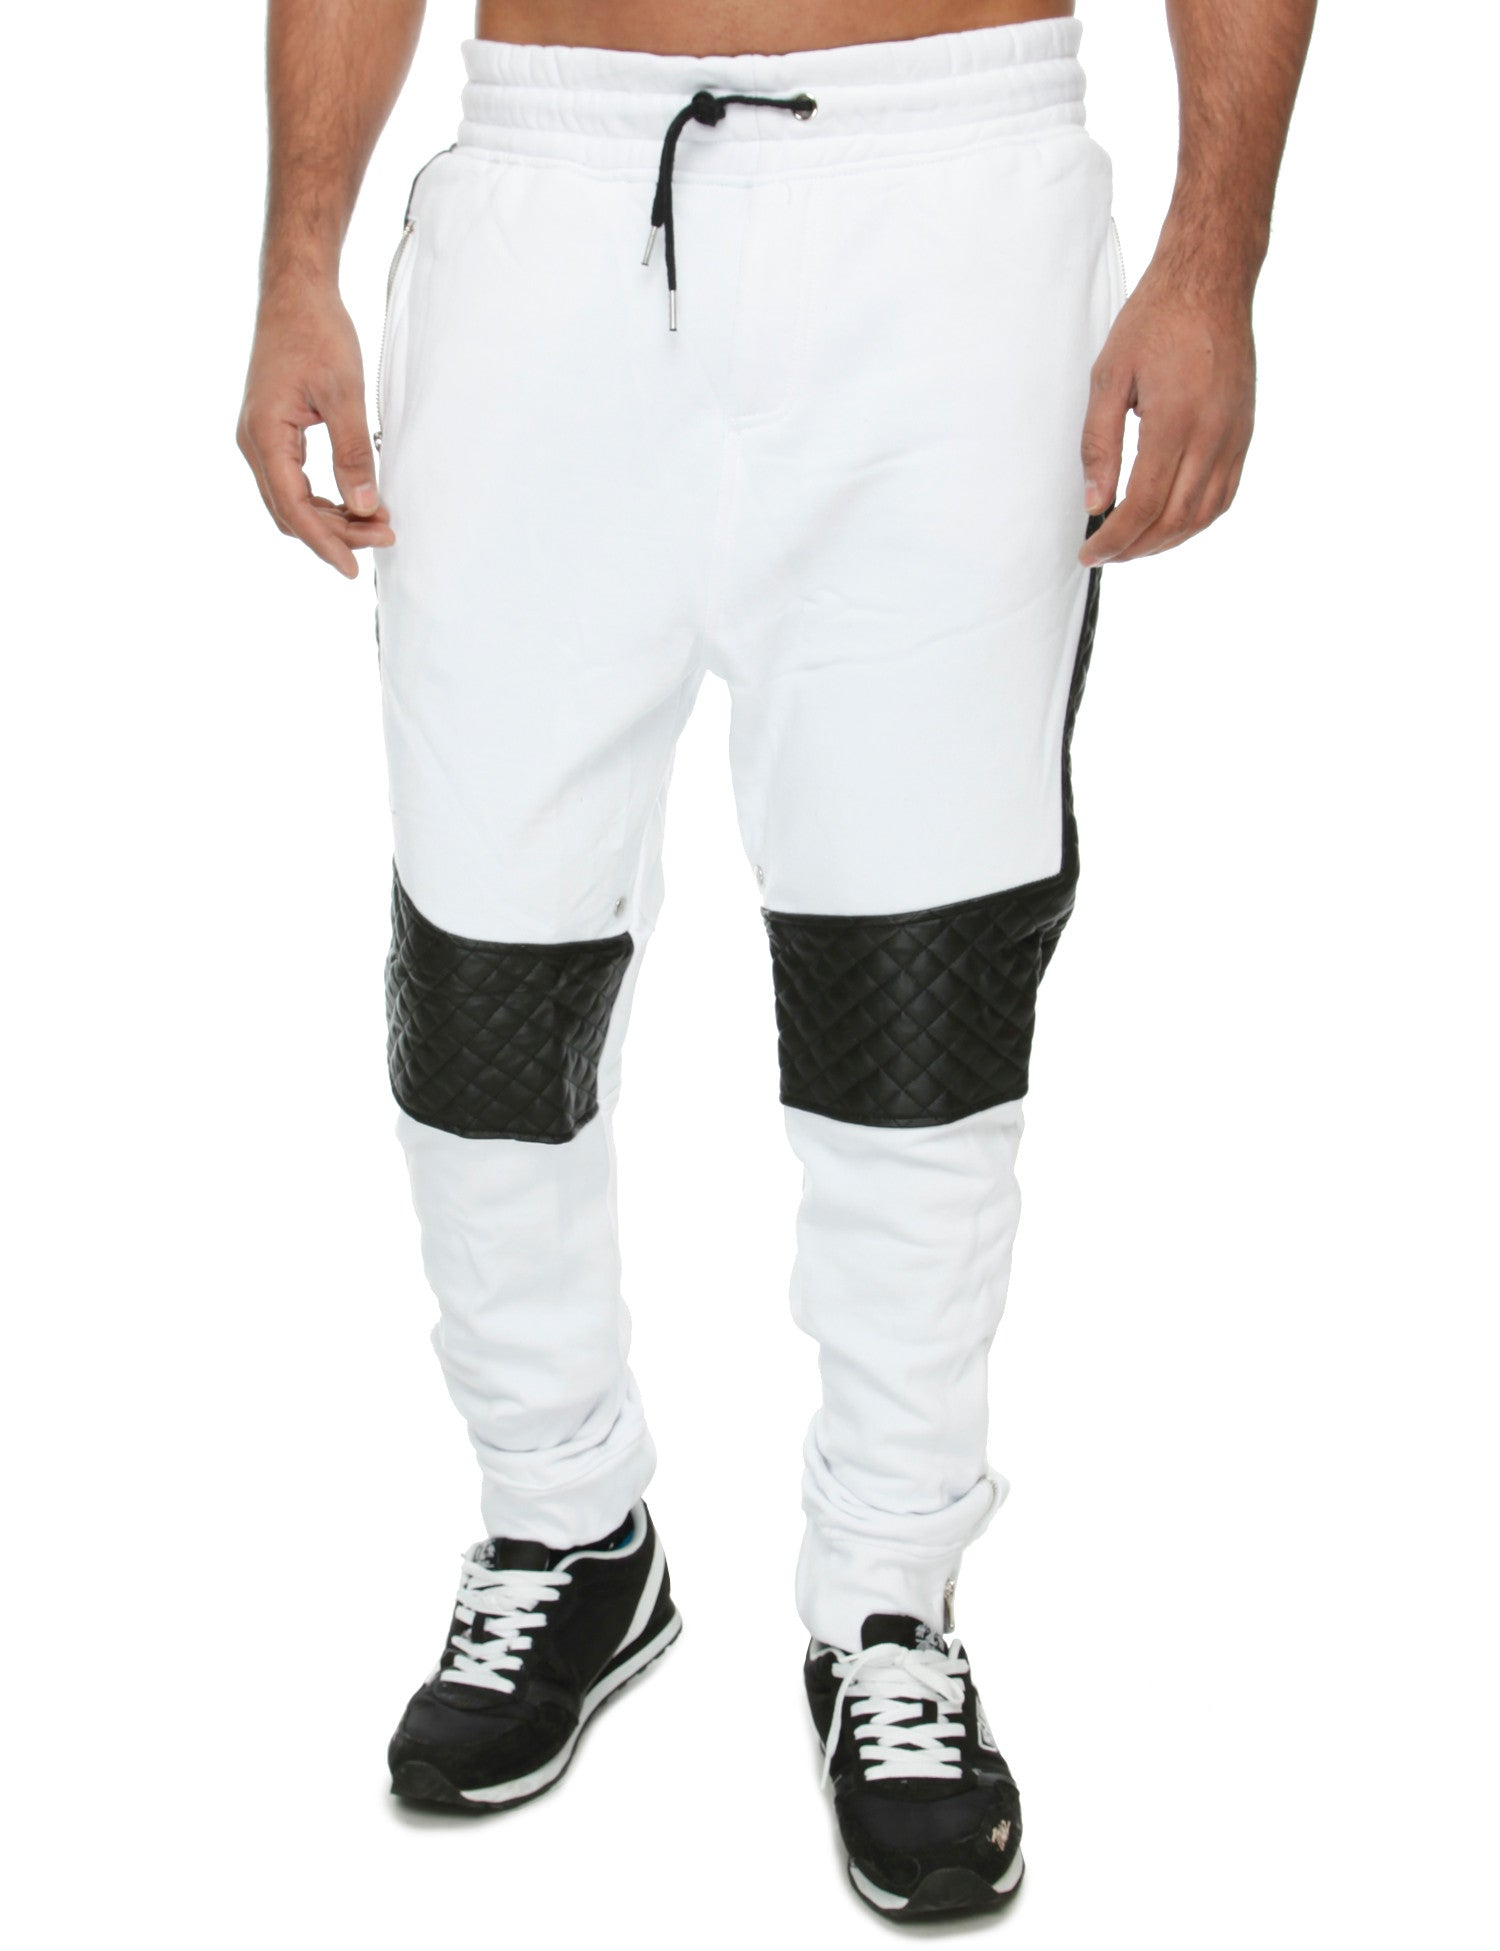 Imperious Fleece Sweatpant FP25 White